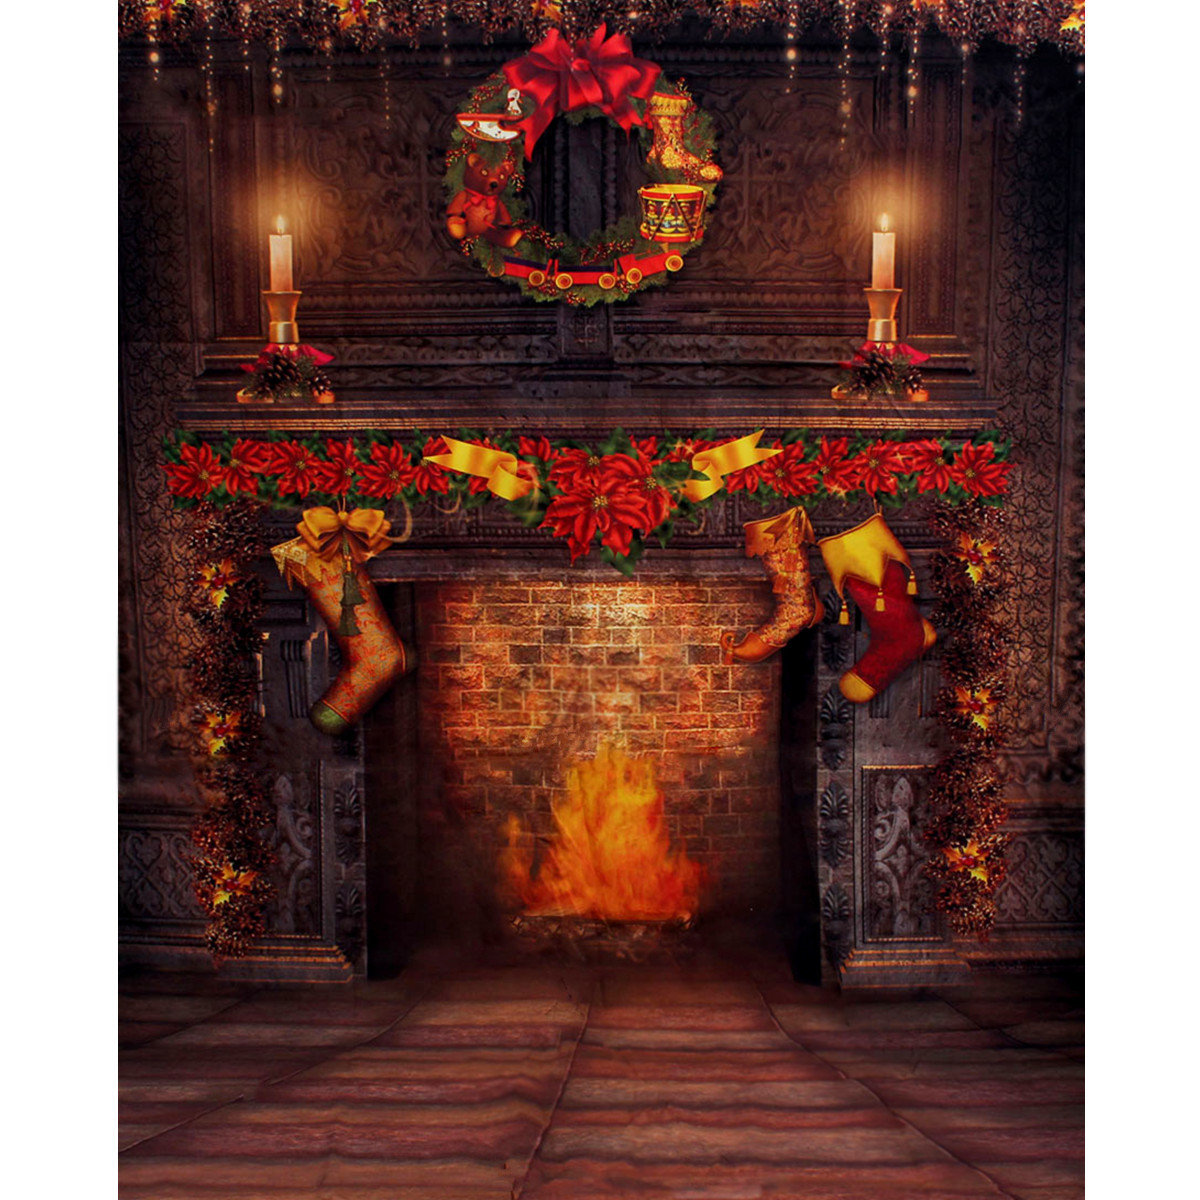 5x7FT Fireplace  Christmas Photography Backdrop Photo Studio Props Background